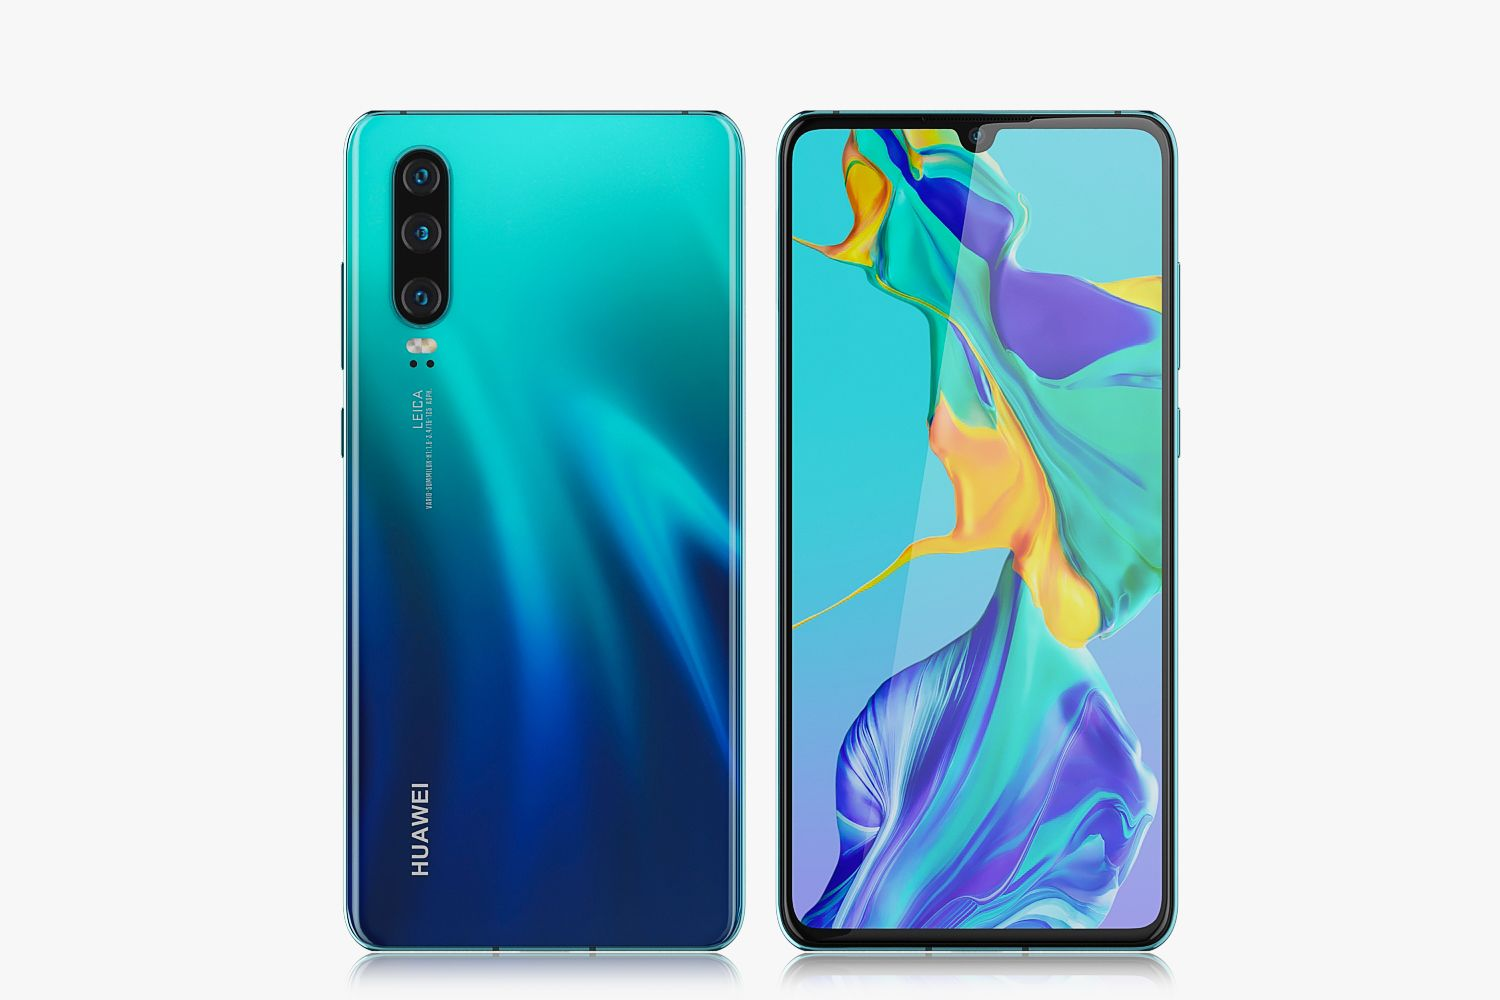 Huawei P30 And P30 Pro Collection All The Colors Huawei Topology